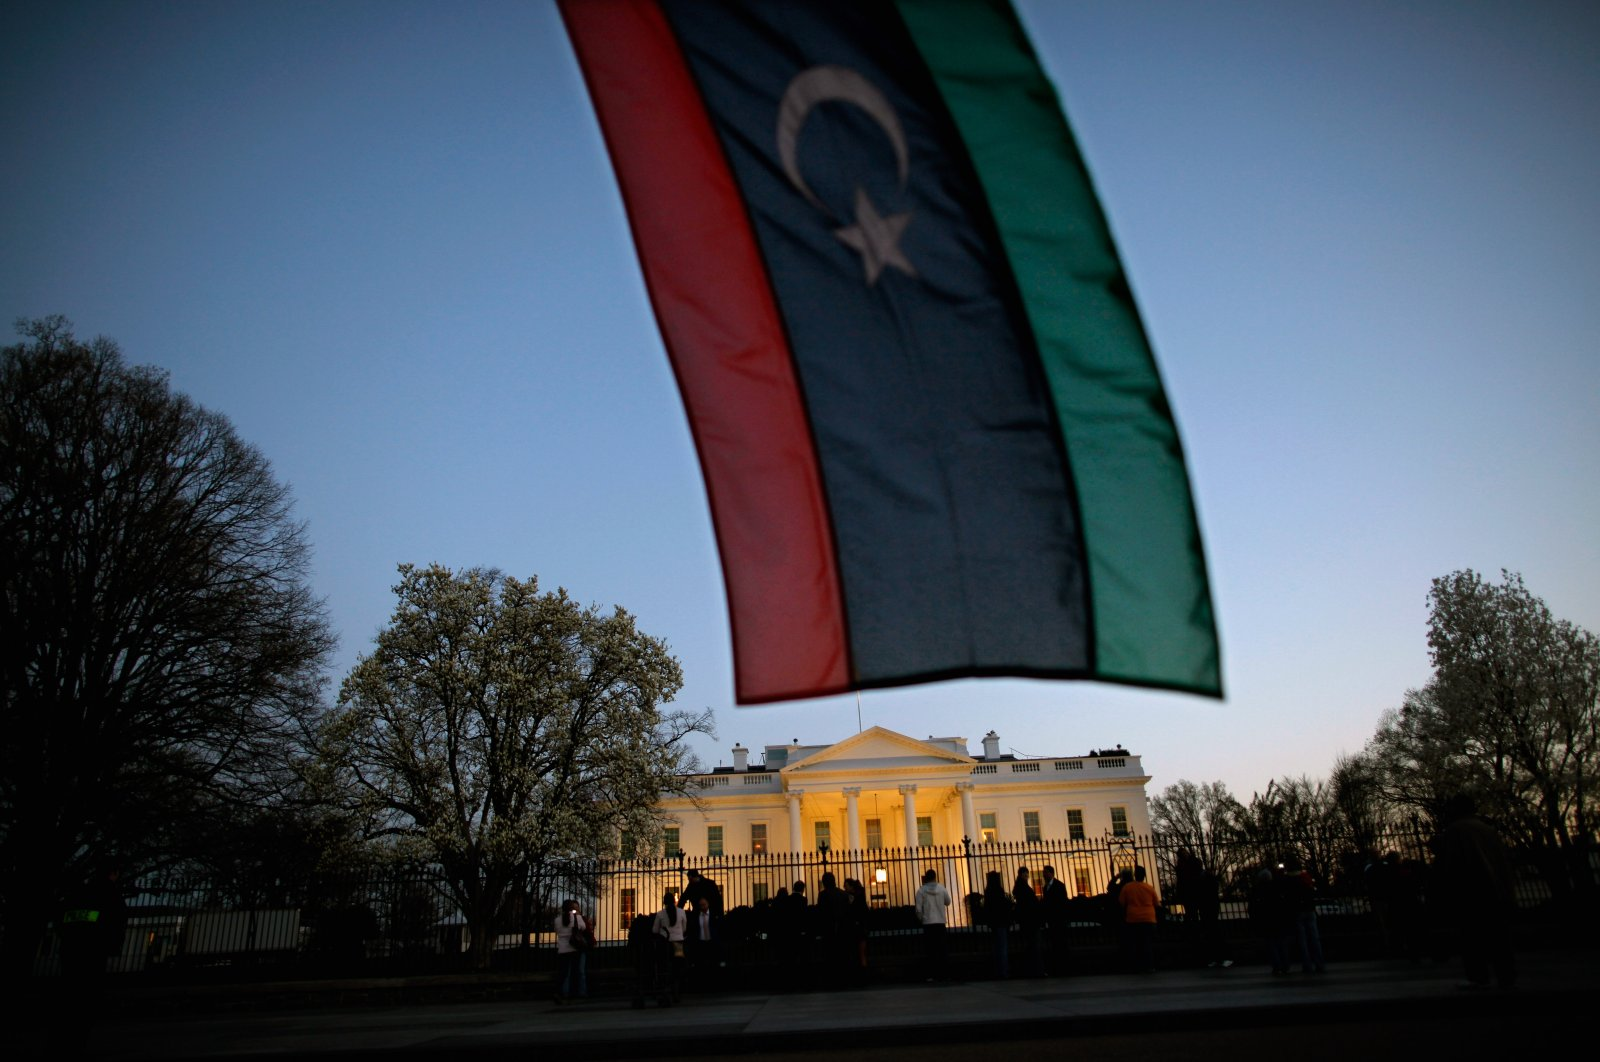 A Libyan holds up a Libyan flag while standing in front of the White House as then-President Barack Obama comments on U.S. involvement in Libya, Washington, D.C., March 28, 2011. (Getty Images)